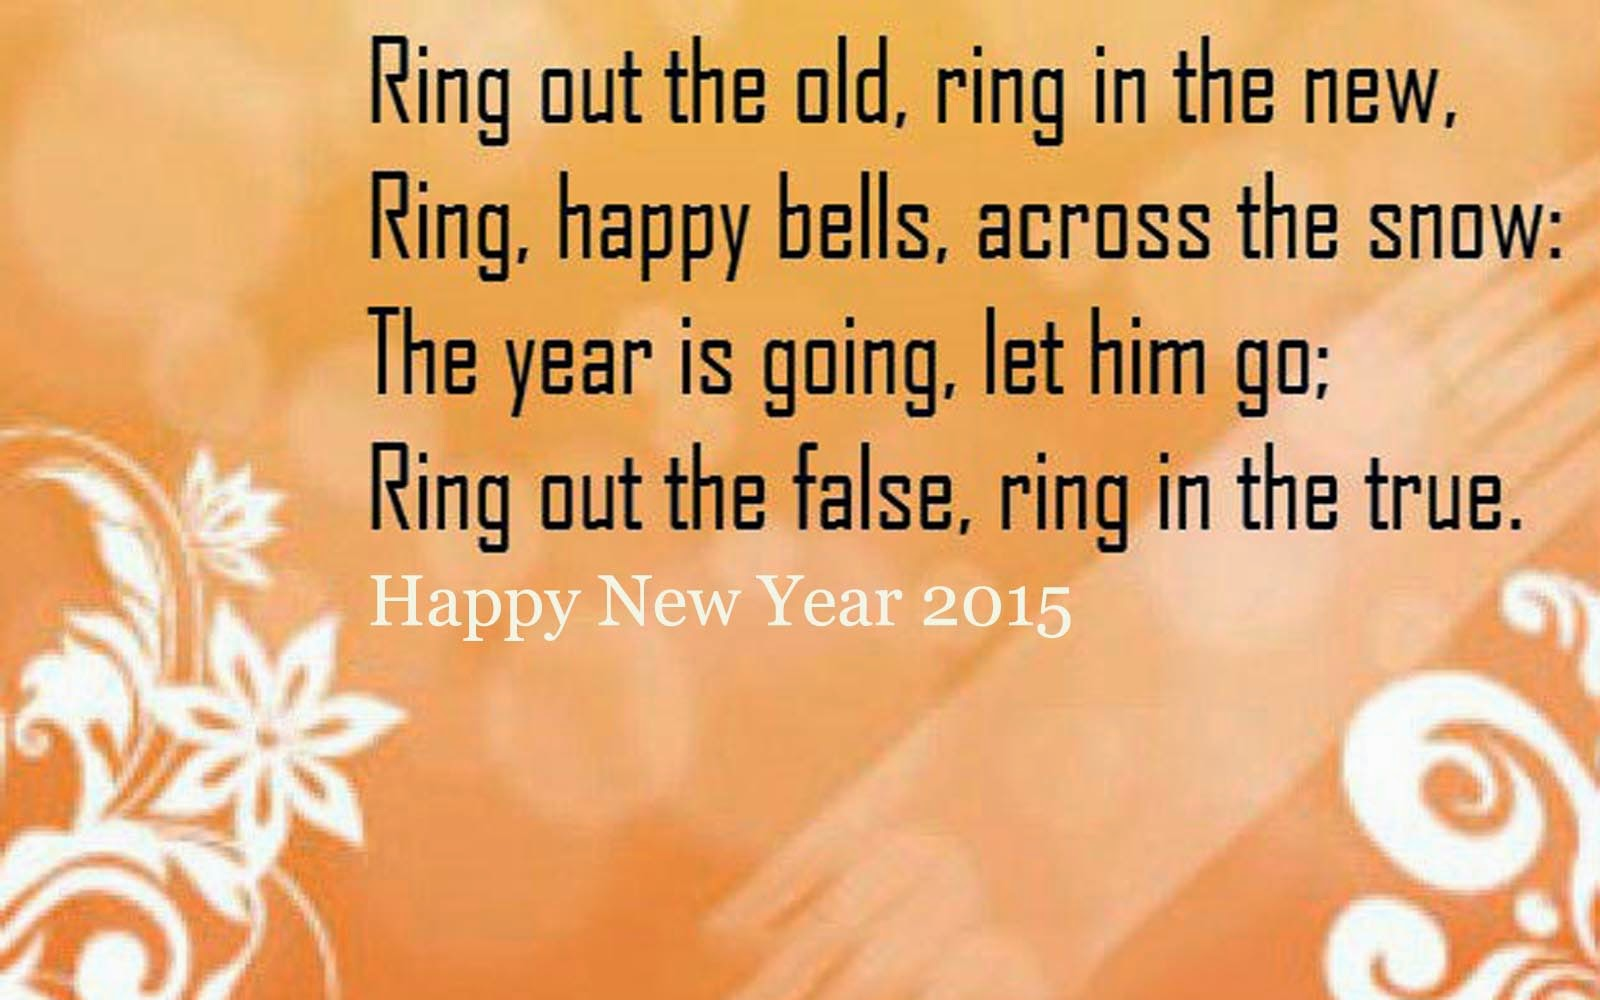 Happy new year wishes and sayings hd wallpapers happy new year 2015 greeting messages and greetings for boyfriend although the new year usually brings change i am glad that you are the one unchanged kristyandbryce Images